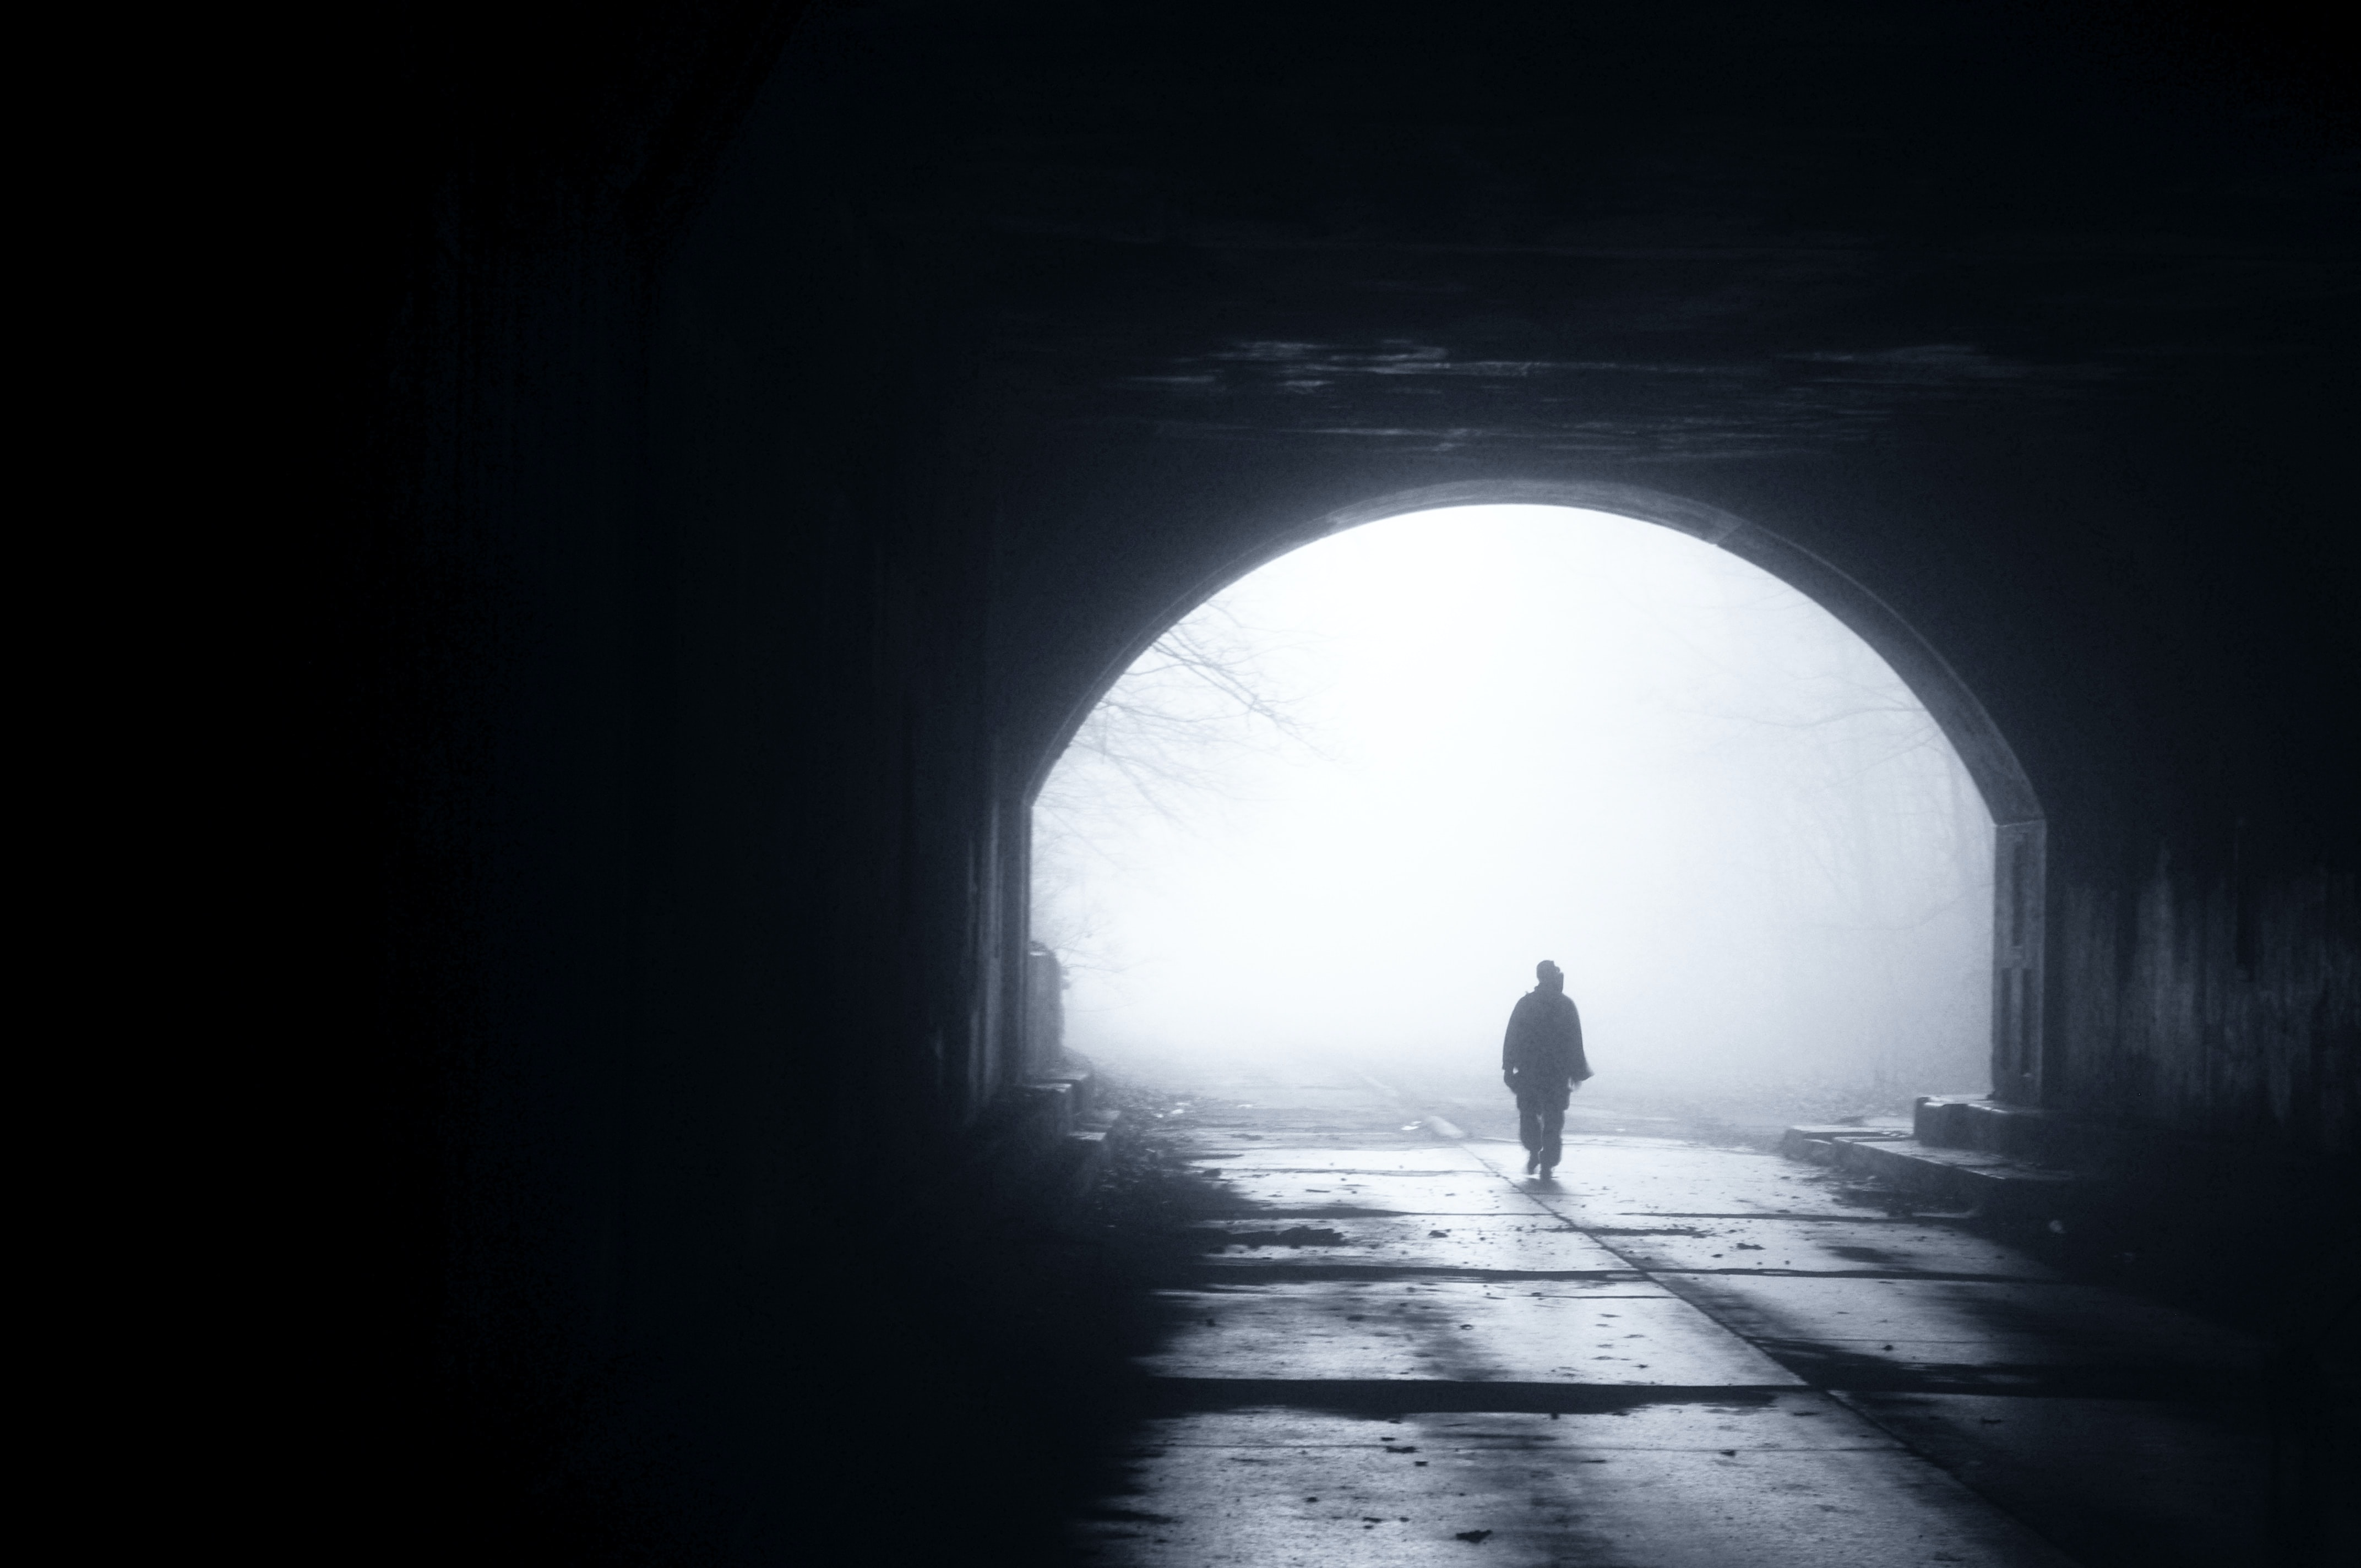 silhouette of person walking out from tunnel during daytime